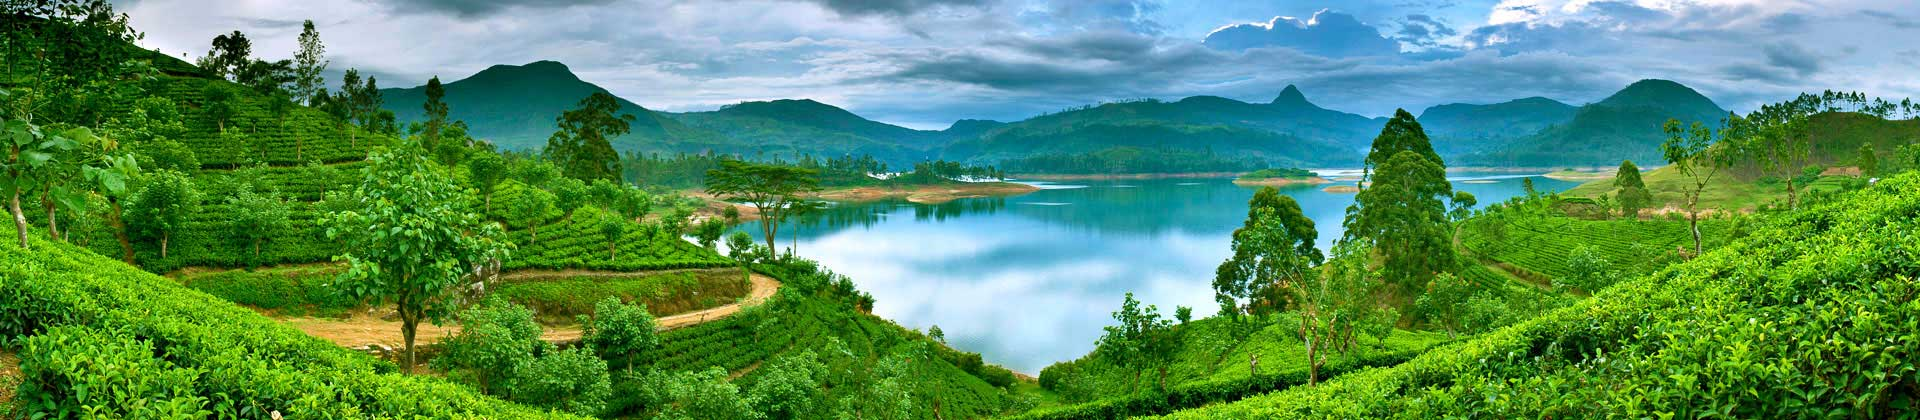 Castlereigh reservoir, in the picturesque hill country of Sri Lanka